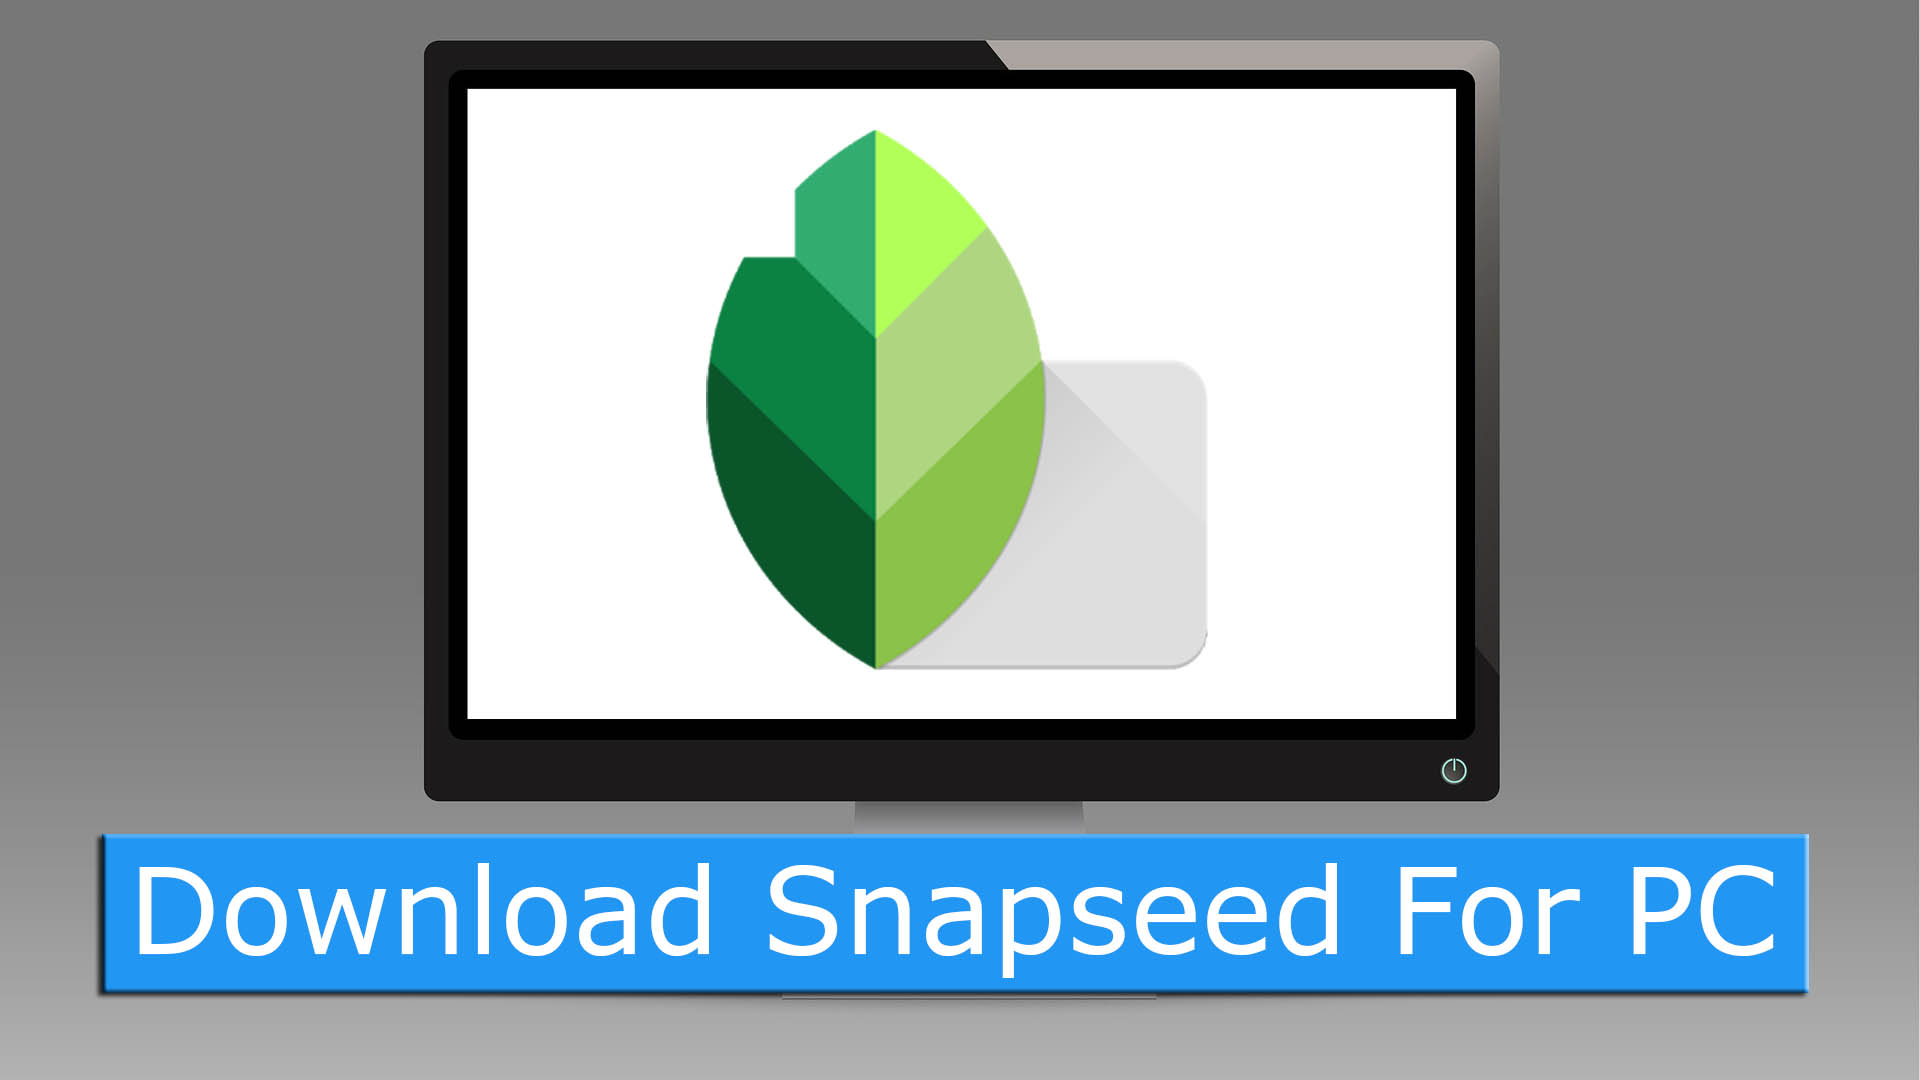 google snapseed download for pc